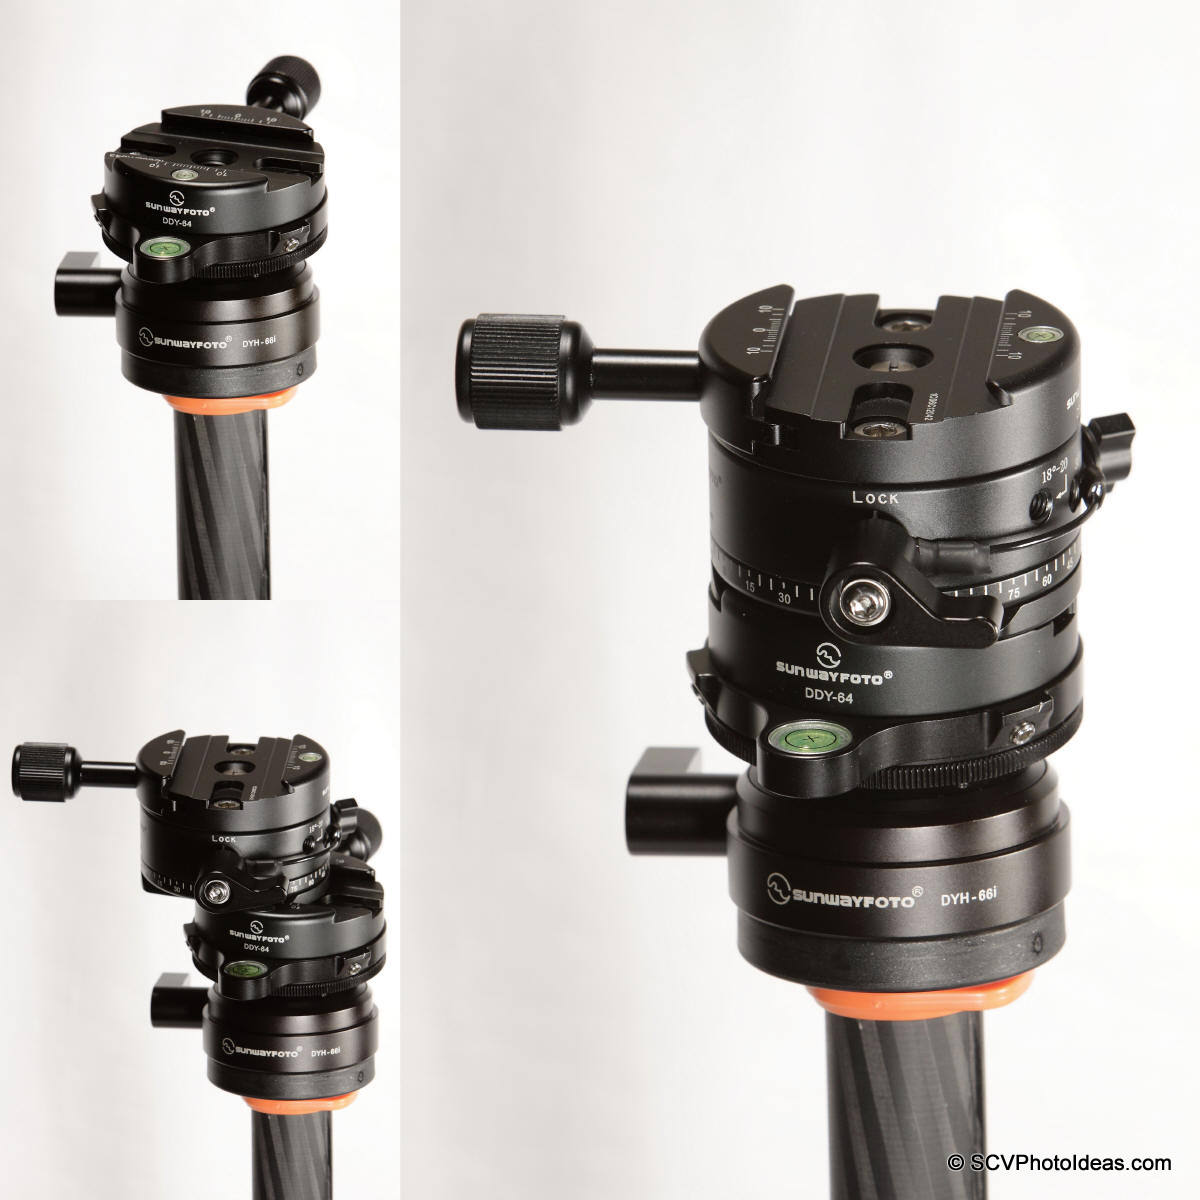 Sunwayfoto DDP-64SX+DDY-64 on DYH-66i+DDY-64 mounting sequence